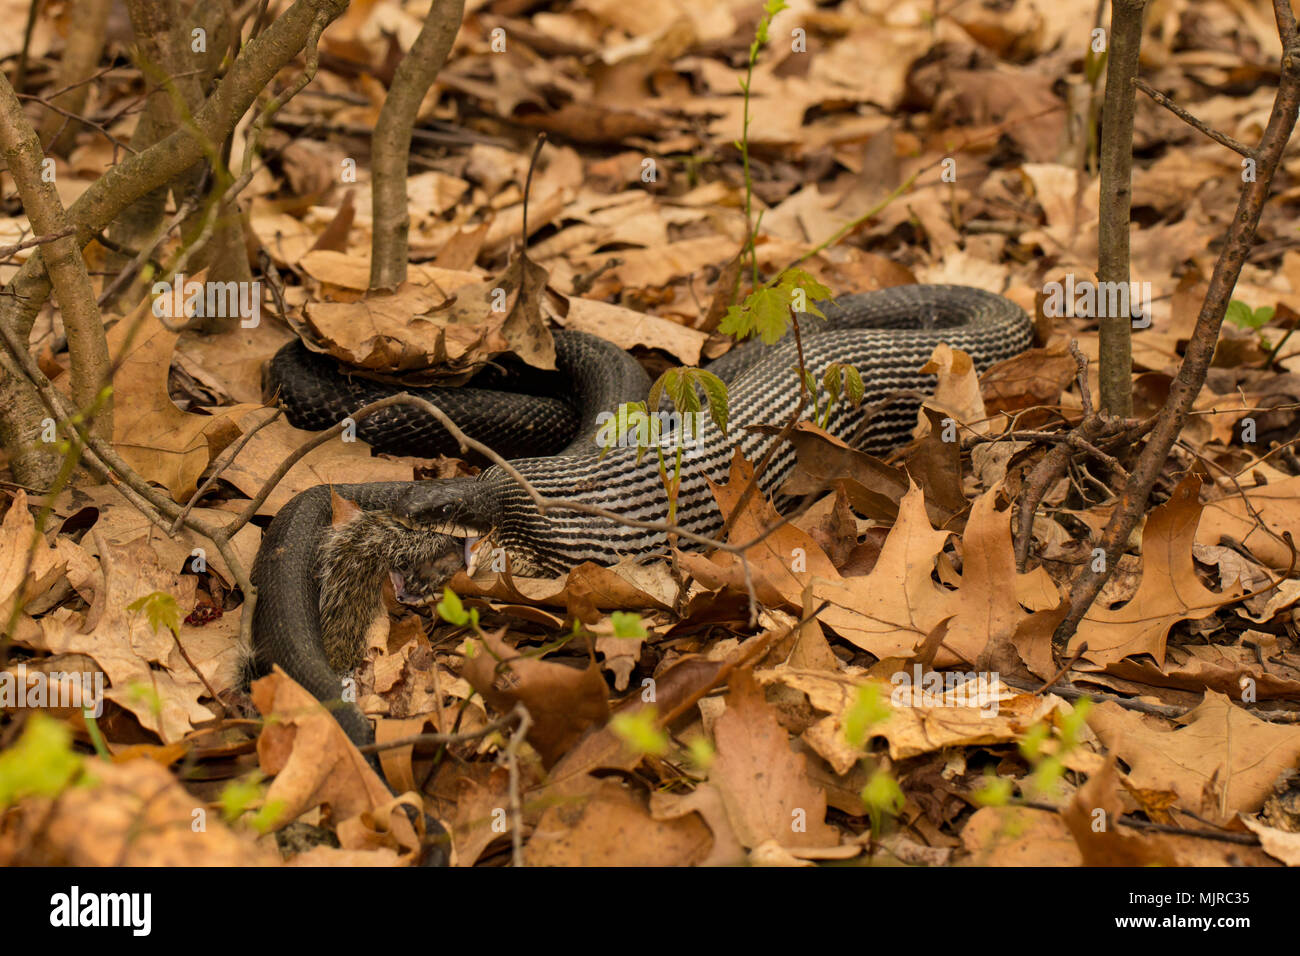 Black rat snake swallowing gray squirrel whole - Pantherophis alleghaniensis - Stock Image